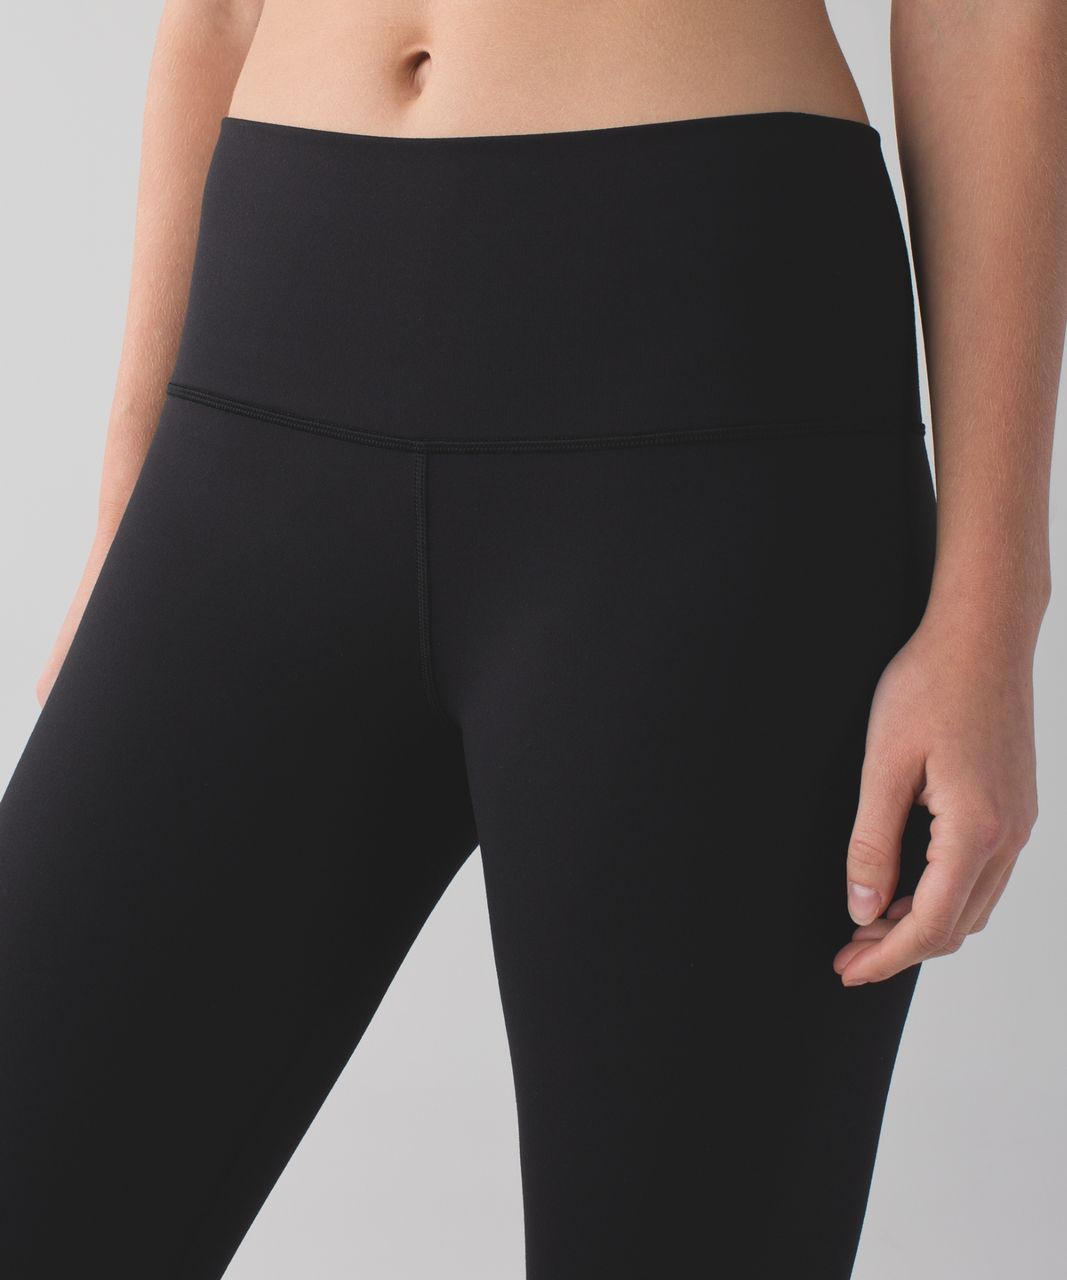 Lululemon Groove Pant II (Roll Down - Regular) *Full-On Luon - Black